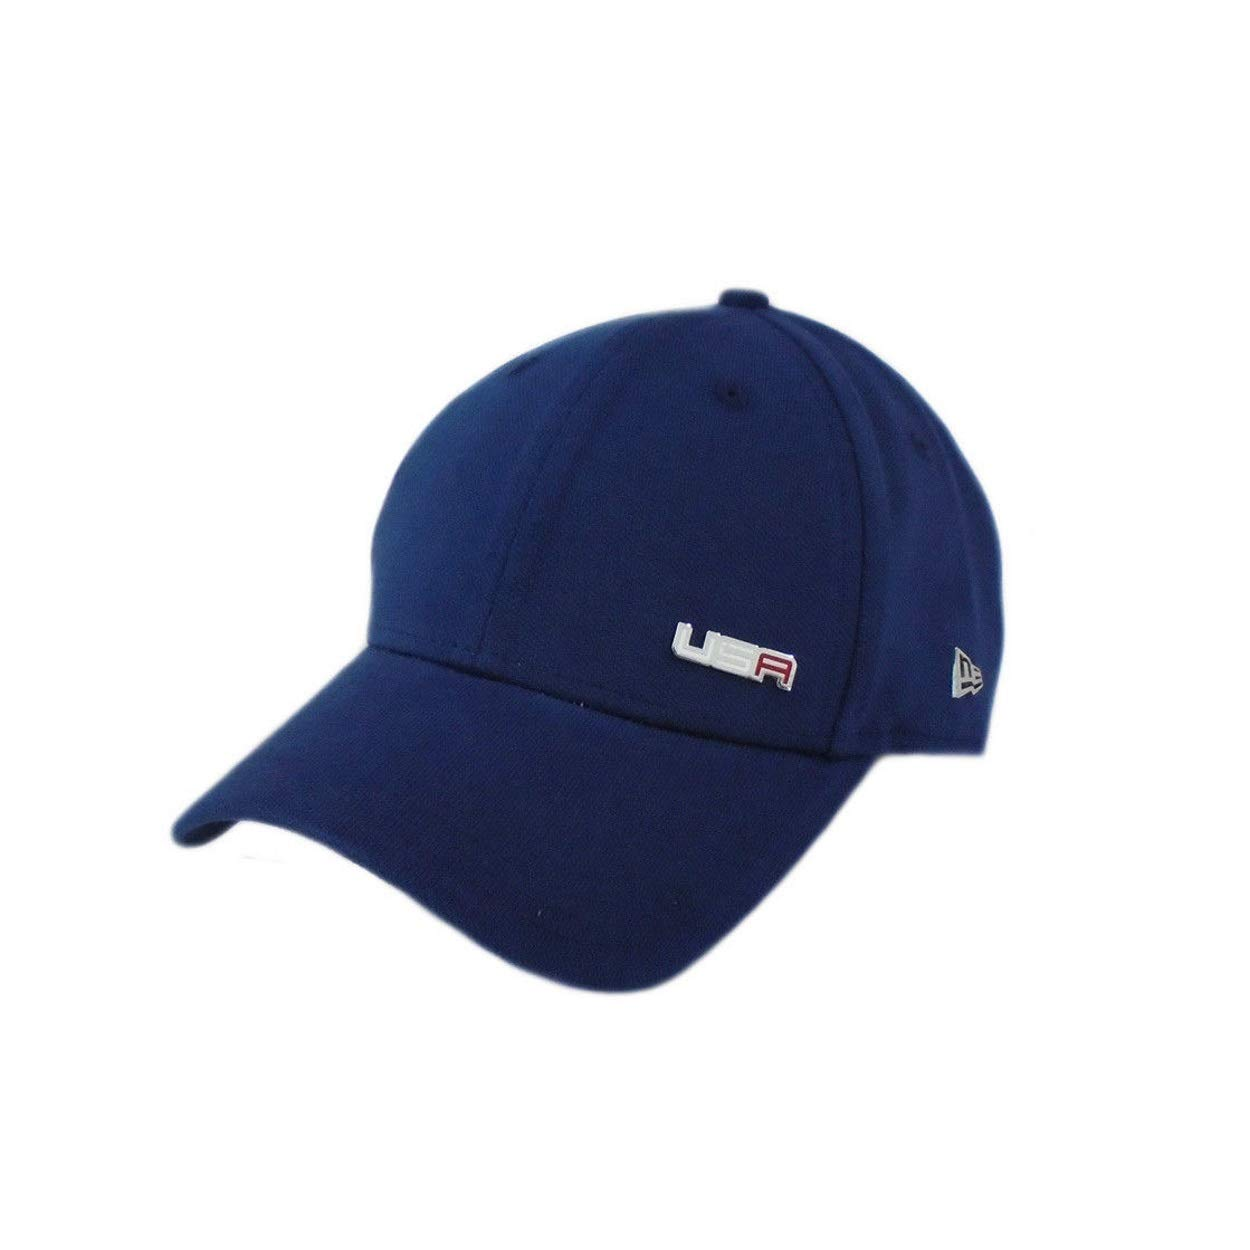 2acf6d71a89 Amazon.com   New Era New 2018 Captain 9Forty USA Ryder Cup Saturday Round  Adjustable Hat Cap   Sports   Outdoors